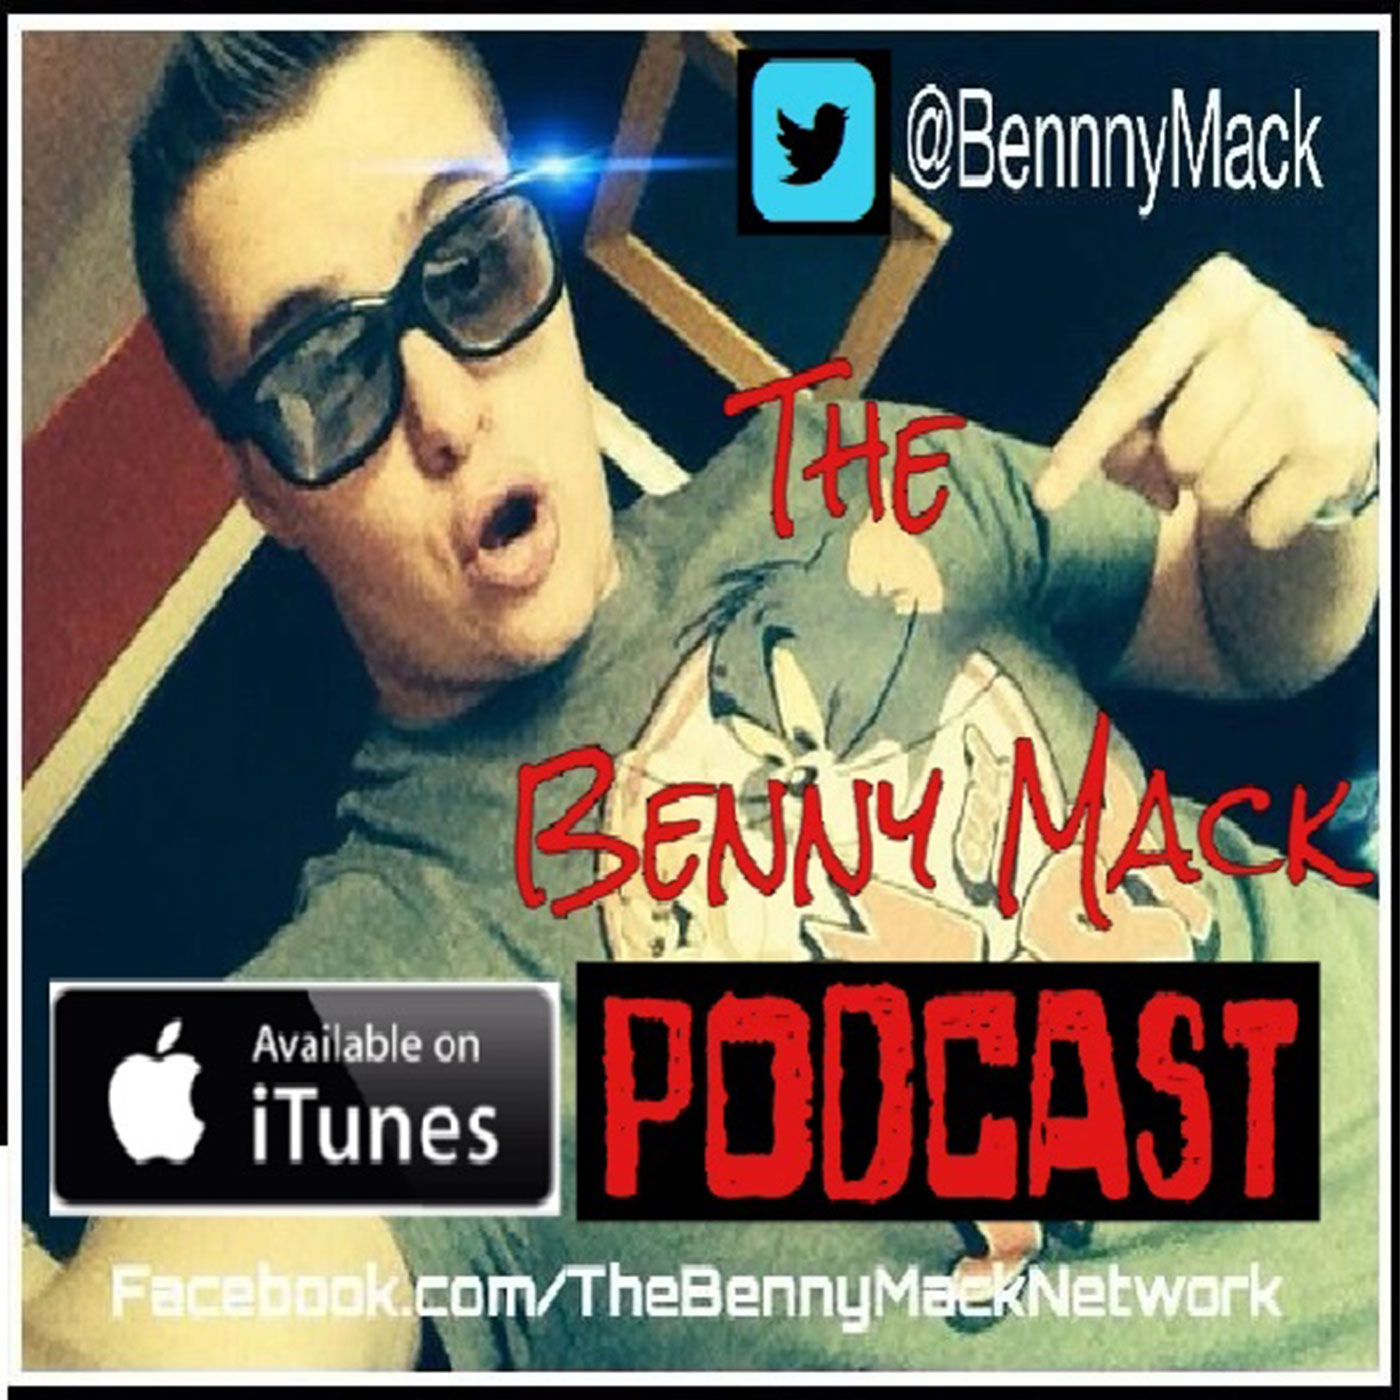 The Benny Mack Podcast The Benny Mack Network Awesound